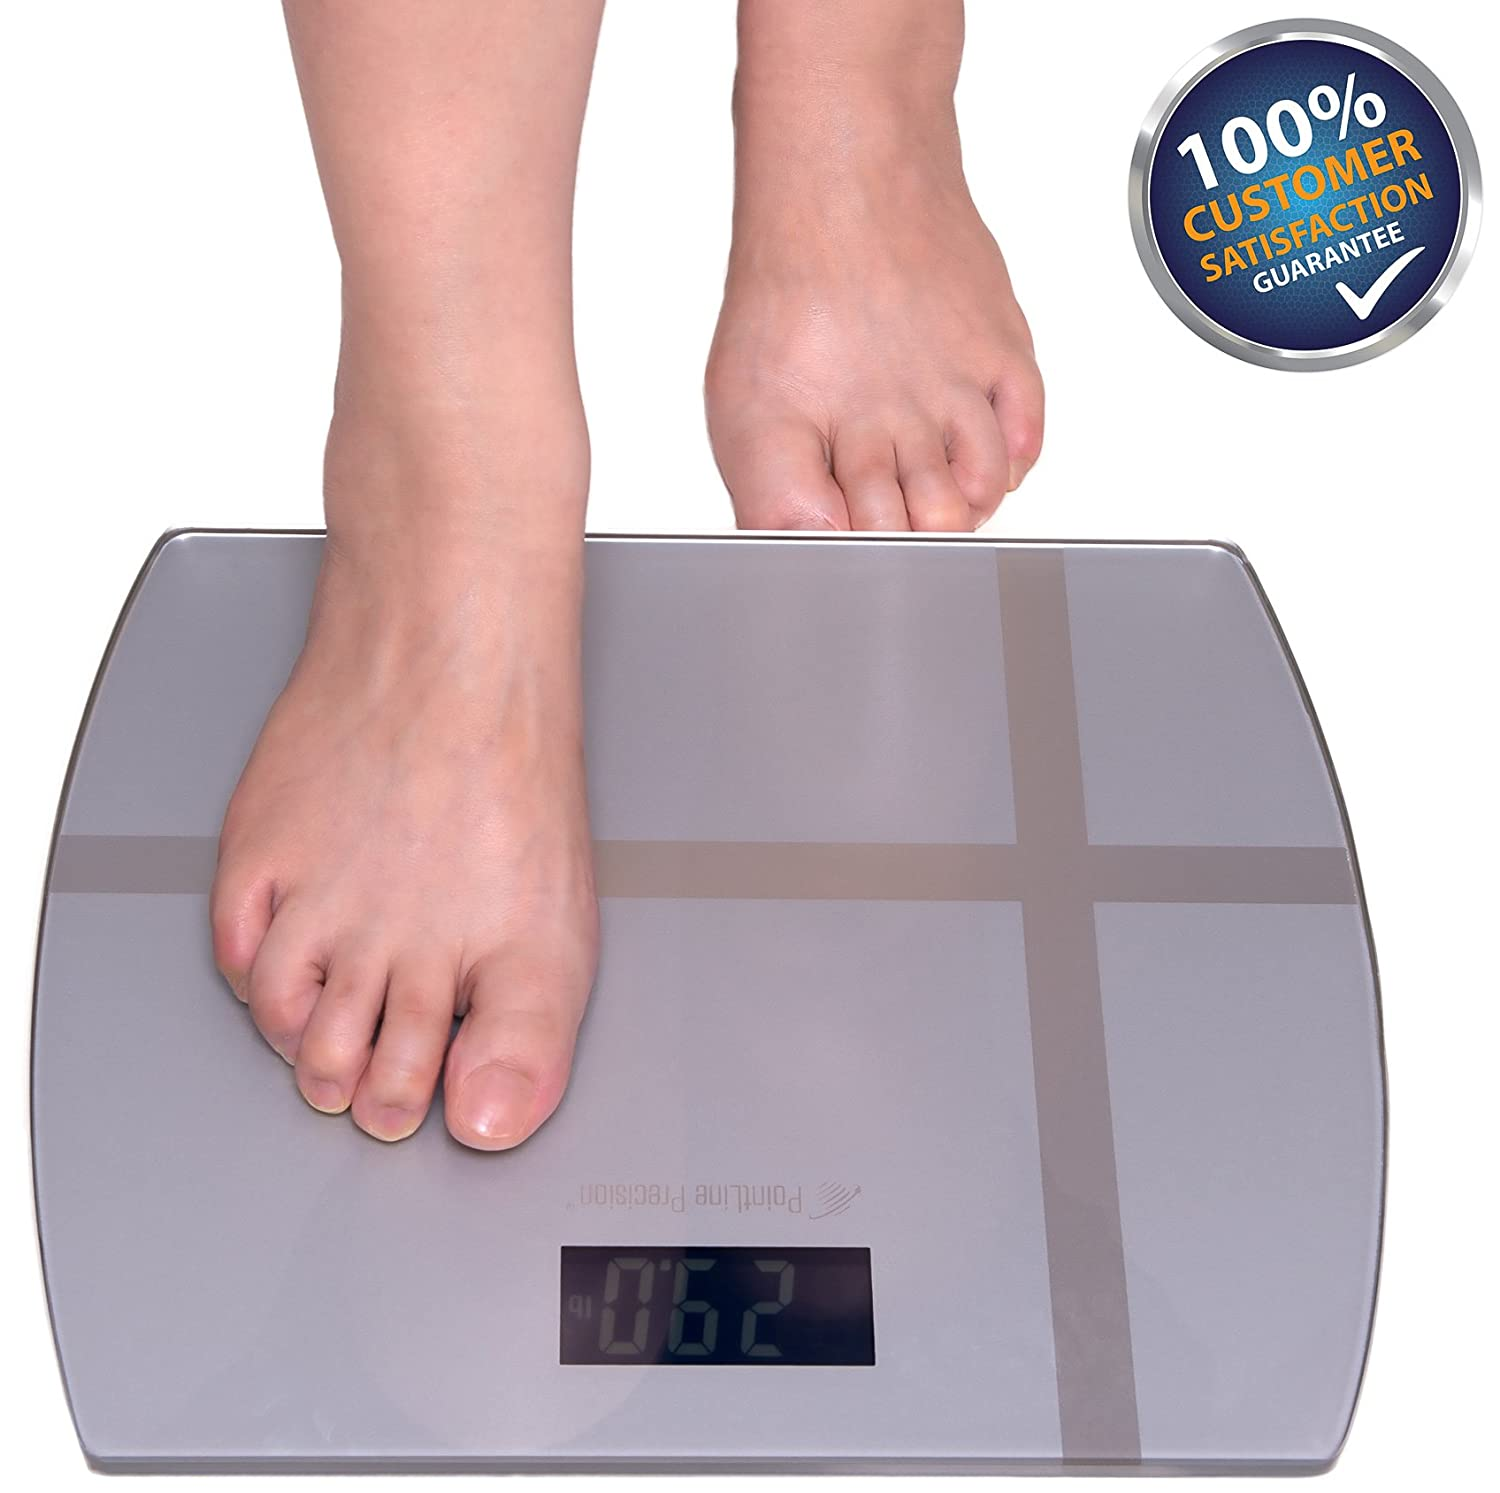 Bathroom scale accuracy consistency - Amazon Com Accupoint Precision Digital Step On Body Weight Bathroom Scale 400 Pound 11x12 Inch Health Personal Care